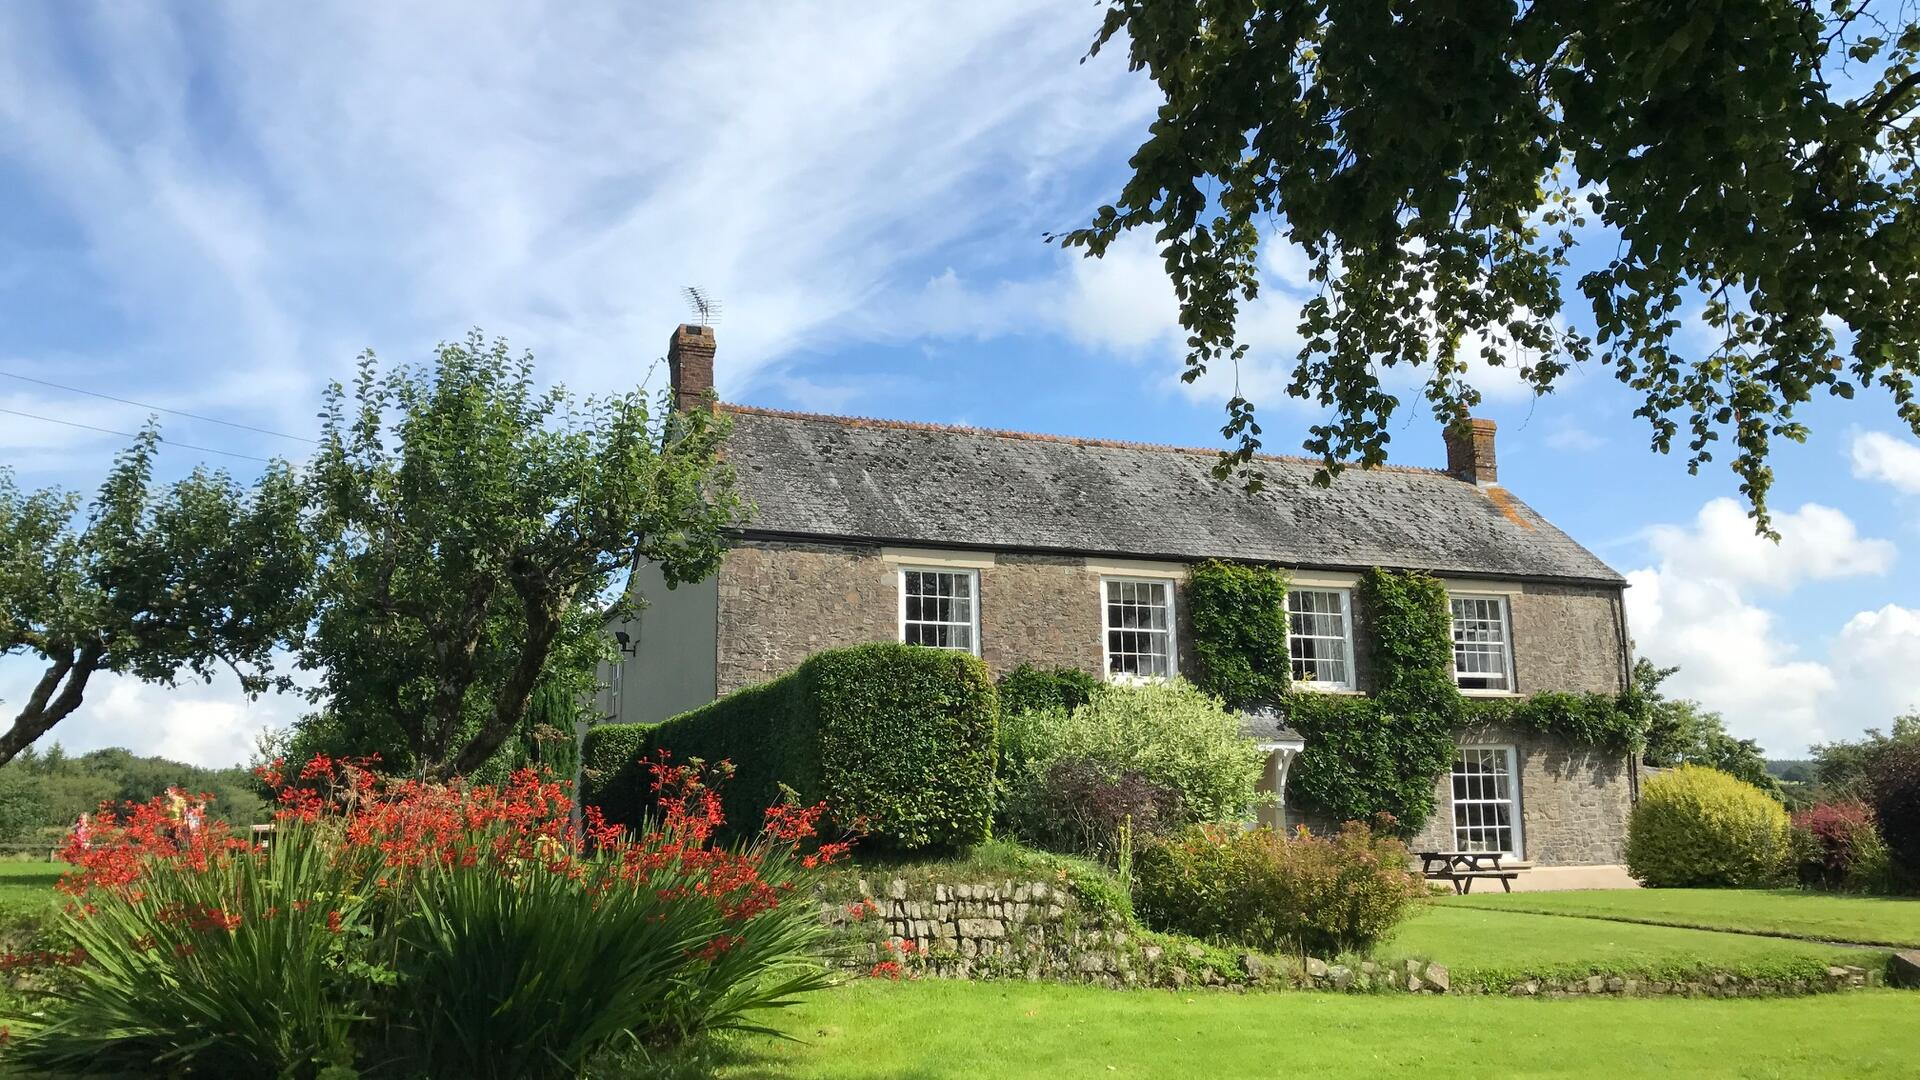 7 Bedroom Cottage complex in Devon, United Kingdom